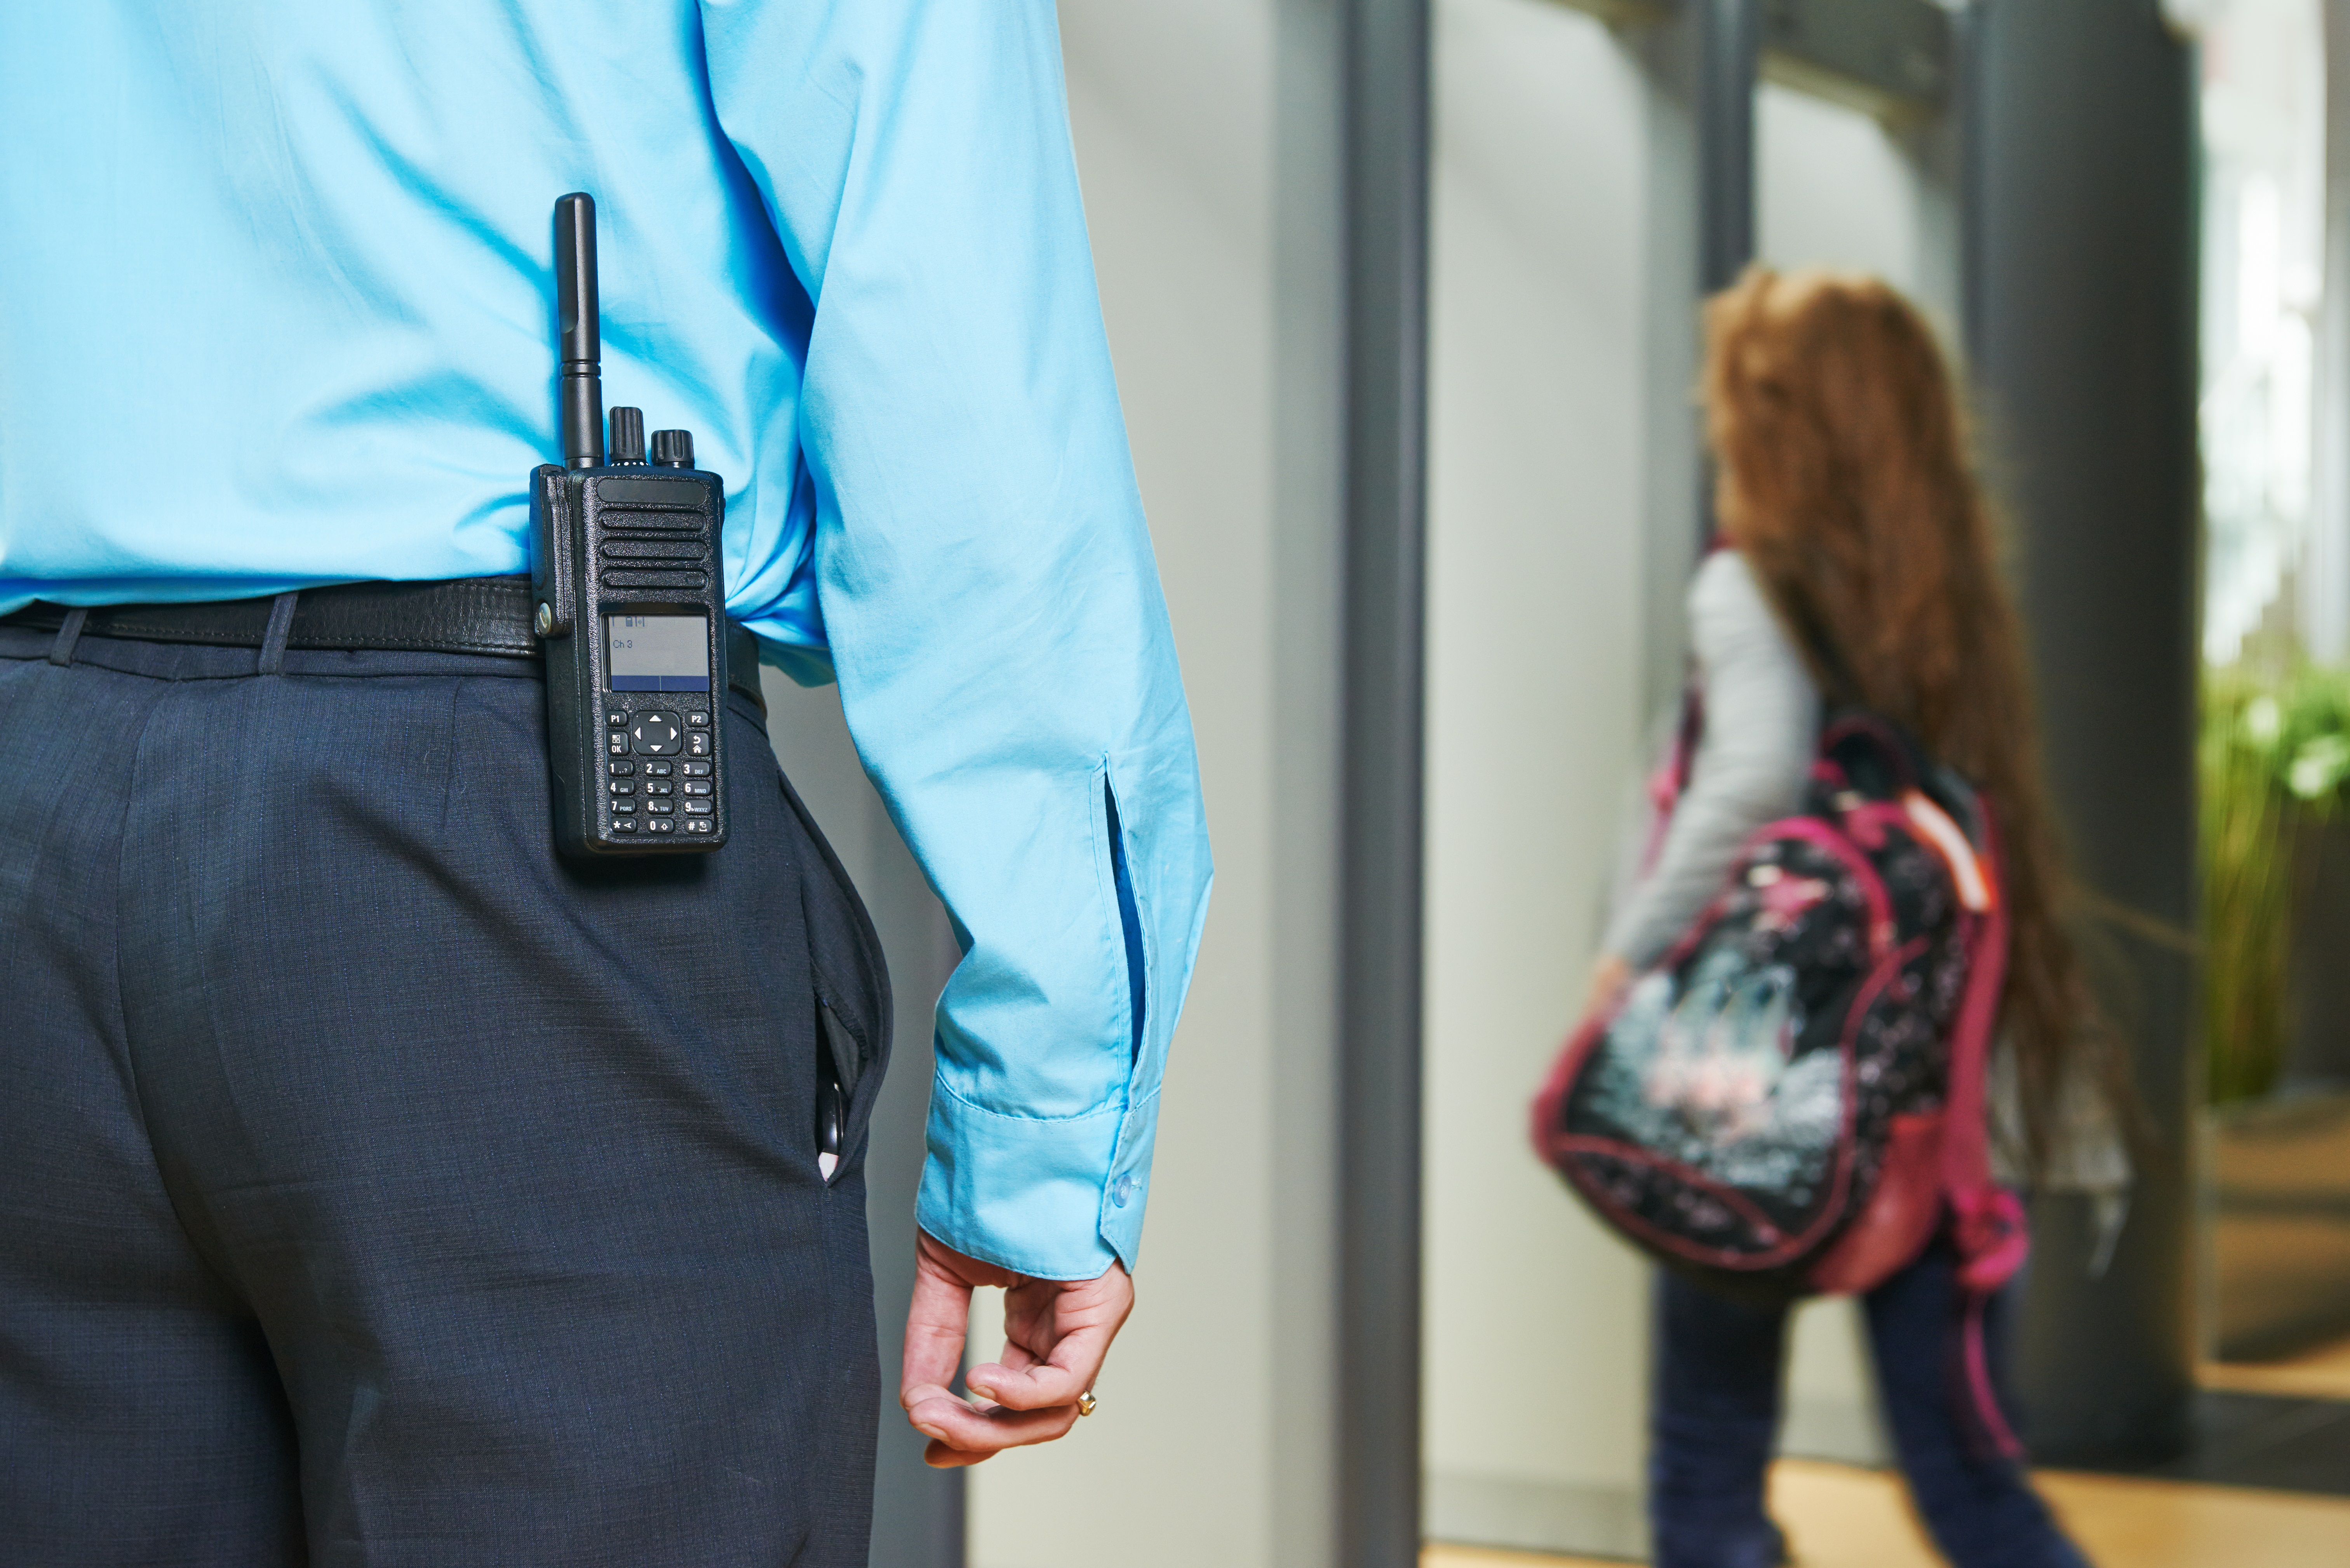 Law School Increases Security After Incident With Former Student